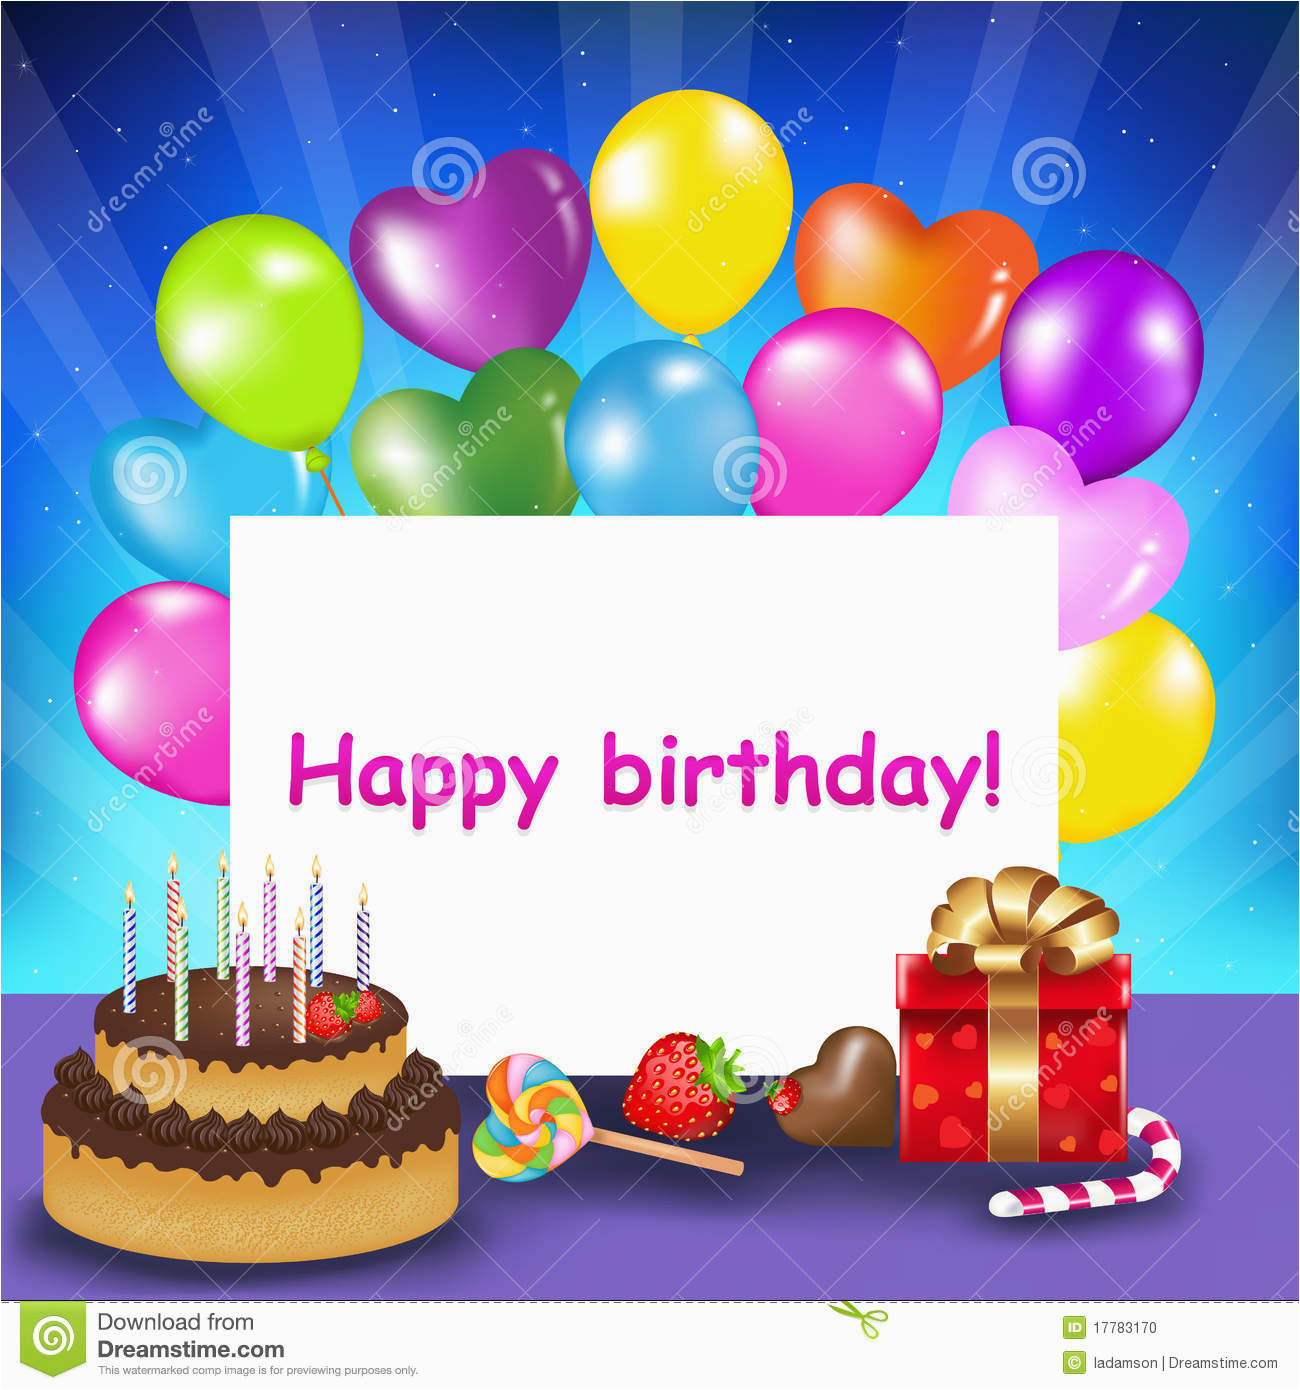 happy birthday cards online free inside ucwords card